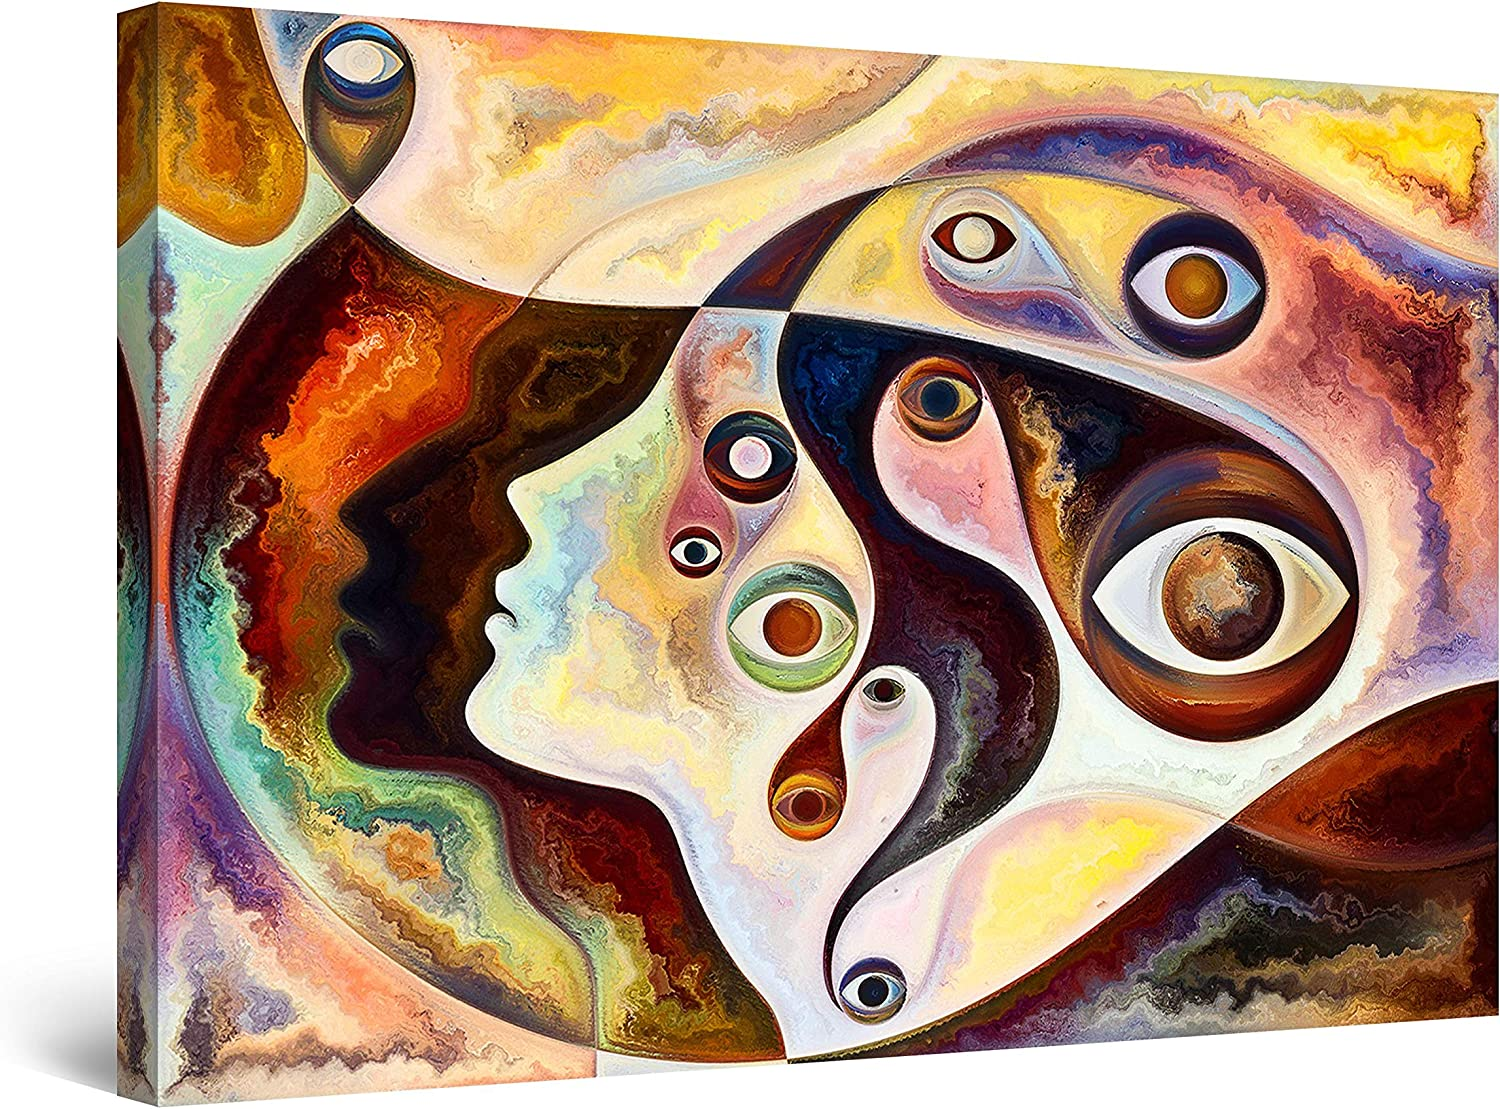 Startonight Canvas Wall Max 74% OFF Art Decor Abstract a free shipping of Figurative Face